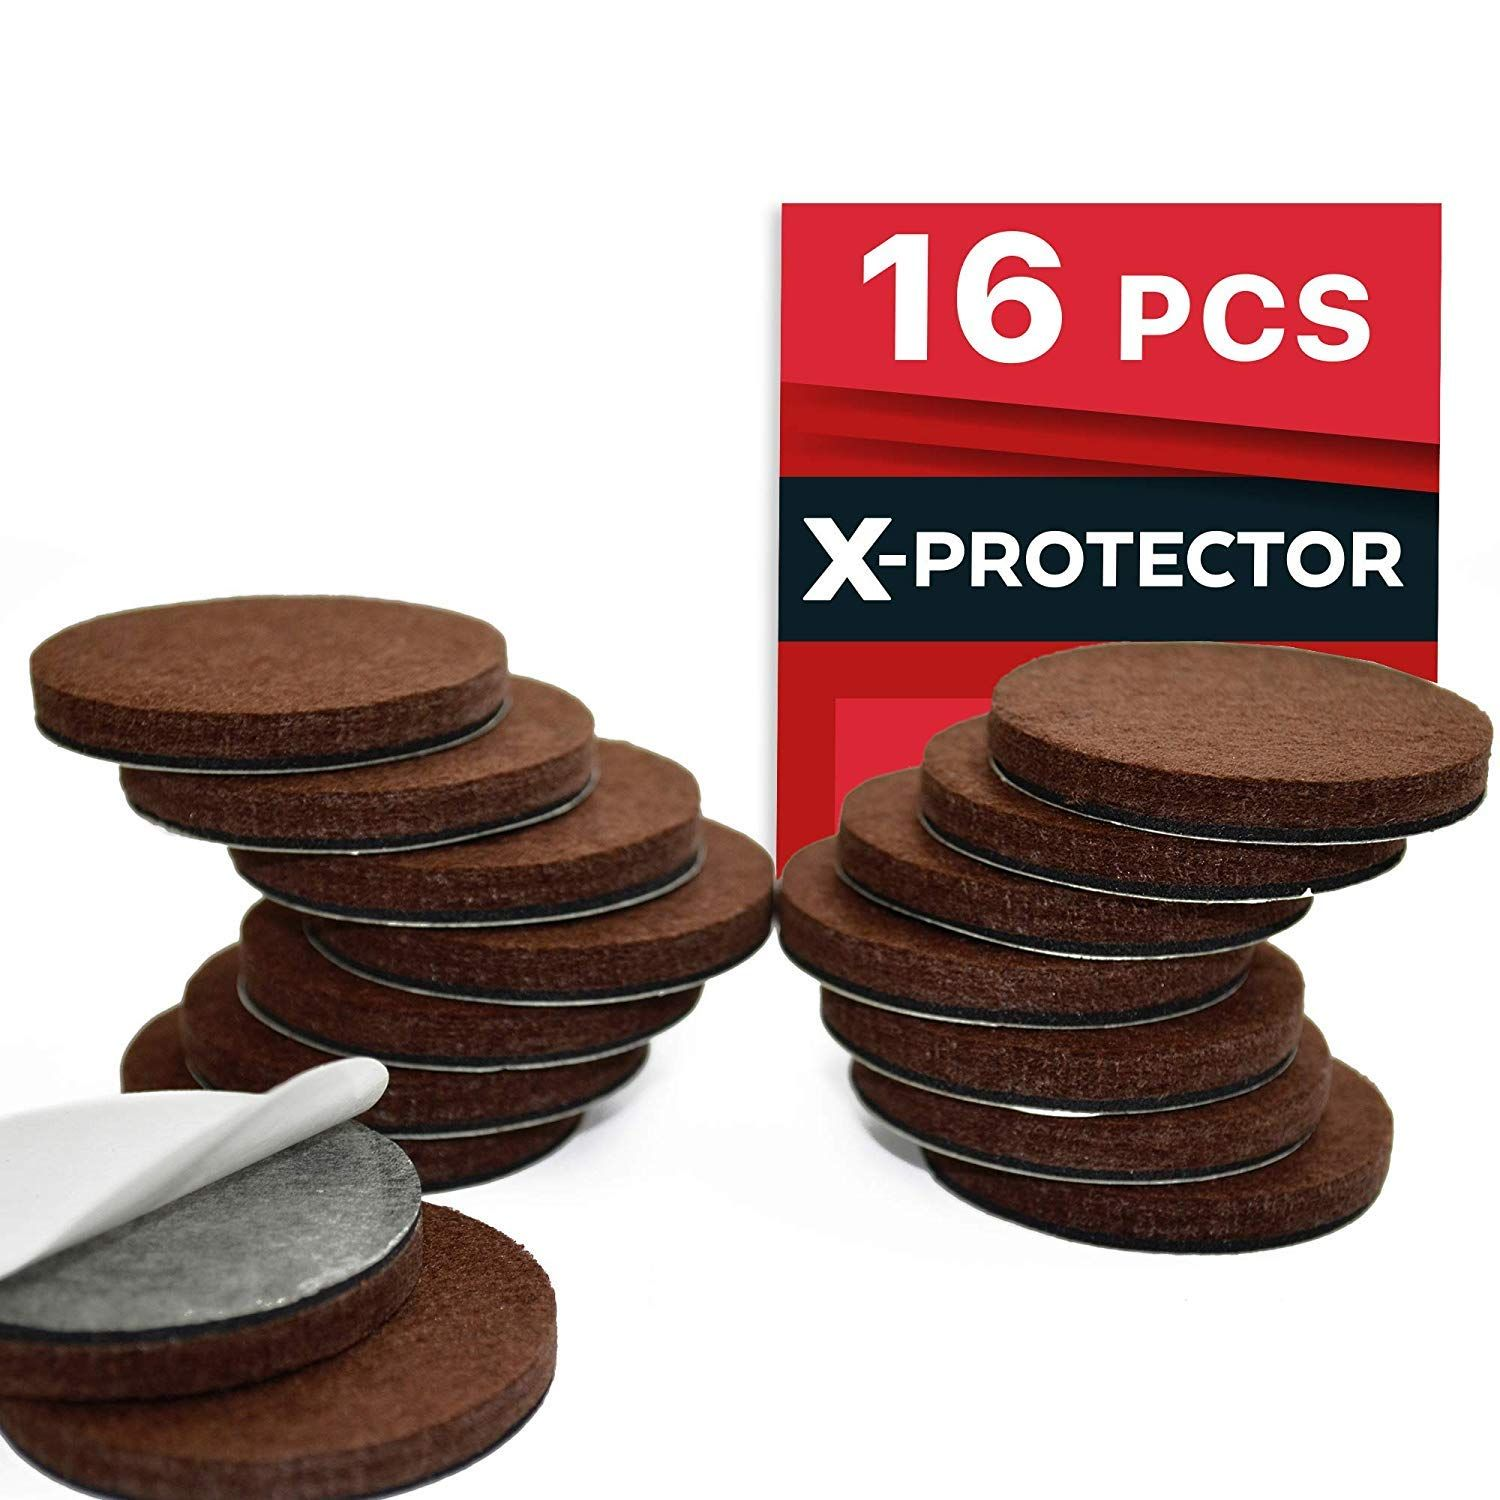 X Protector Premium 16 Thick 1 4a Heavy Duty Felt Furniture Pads